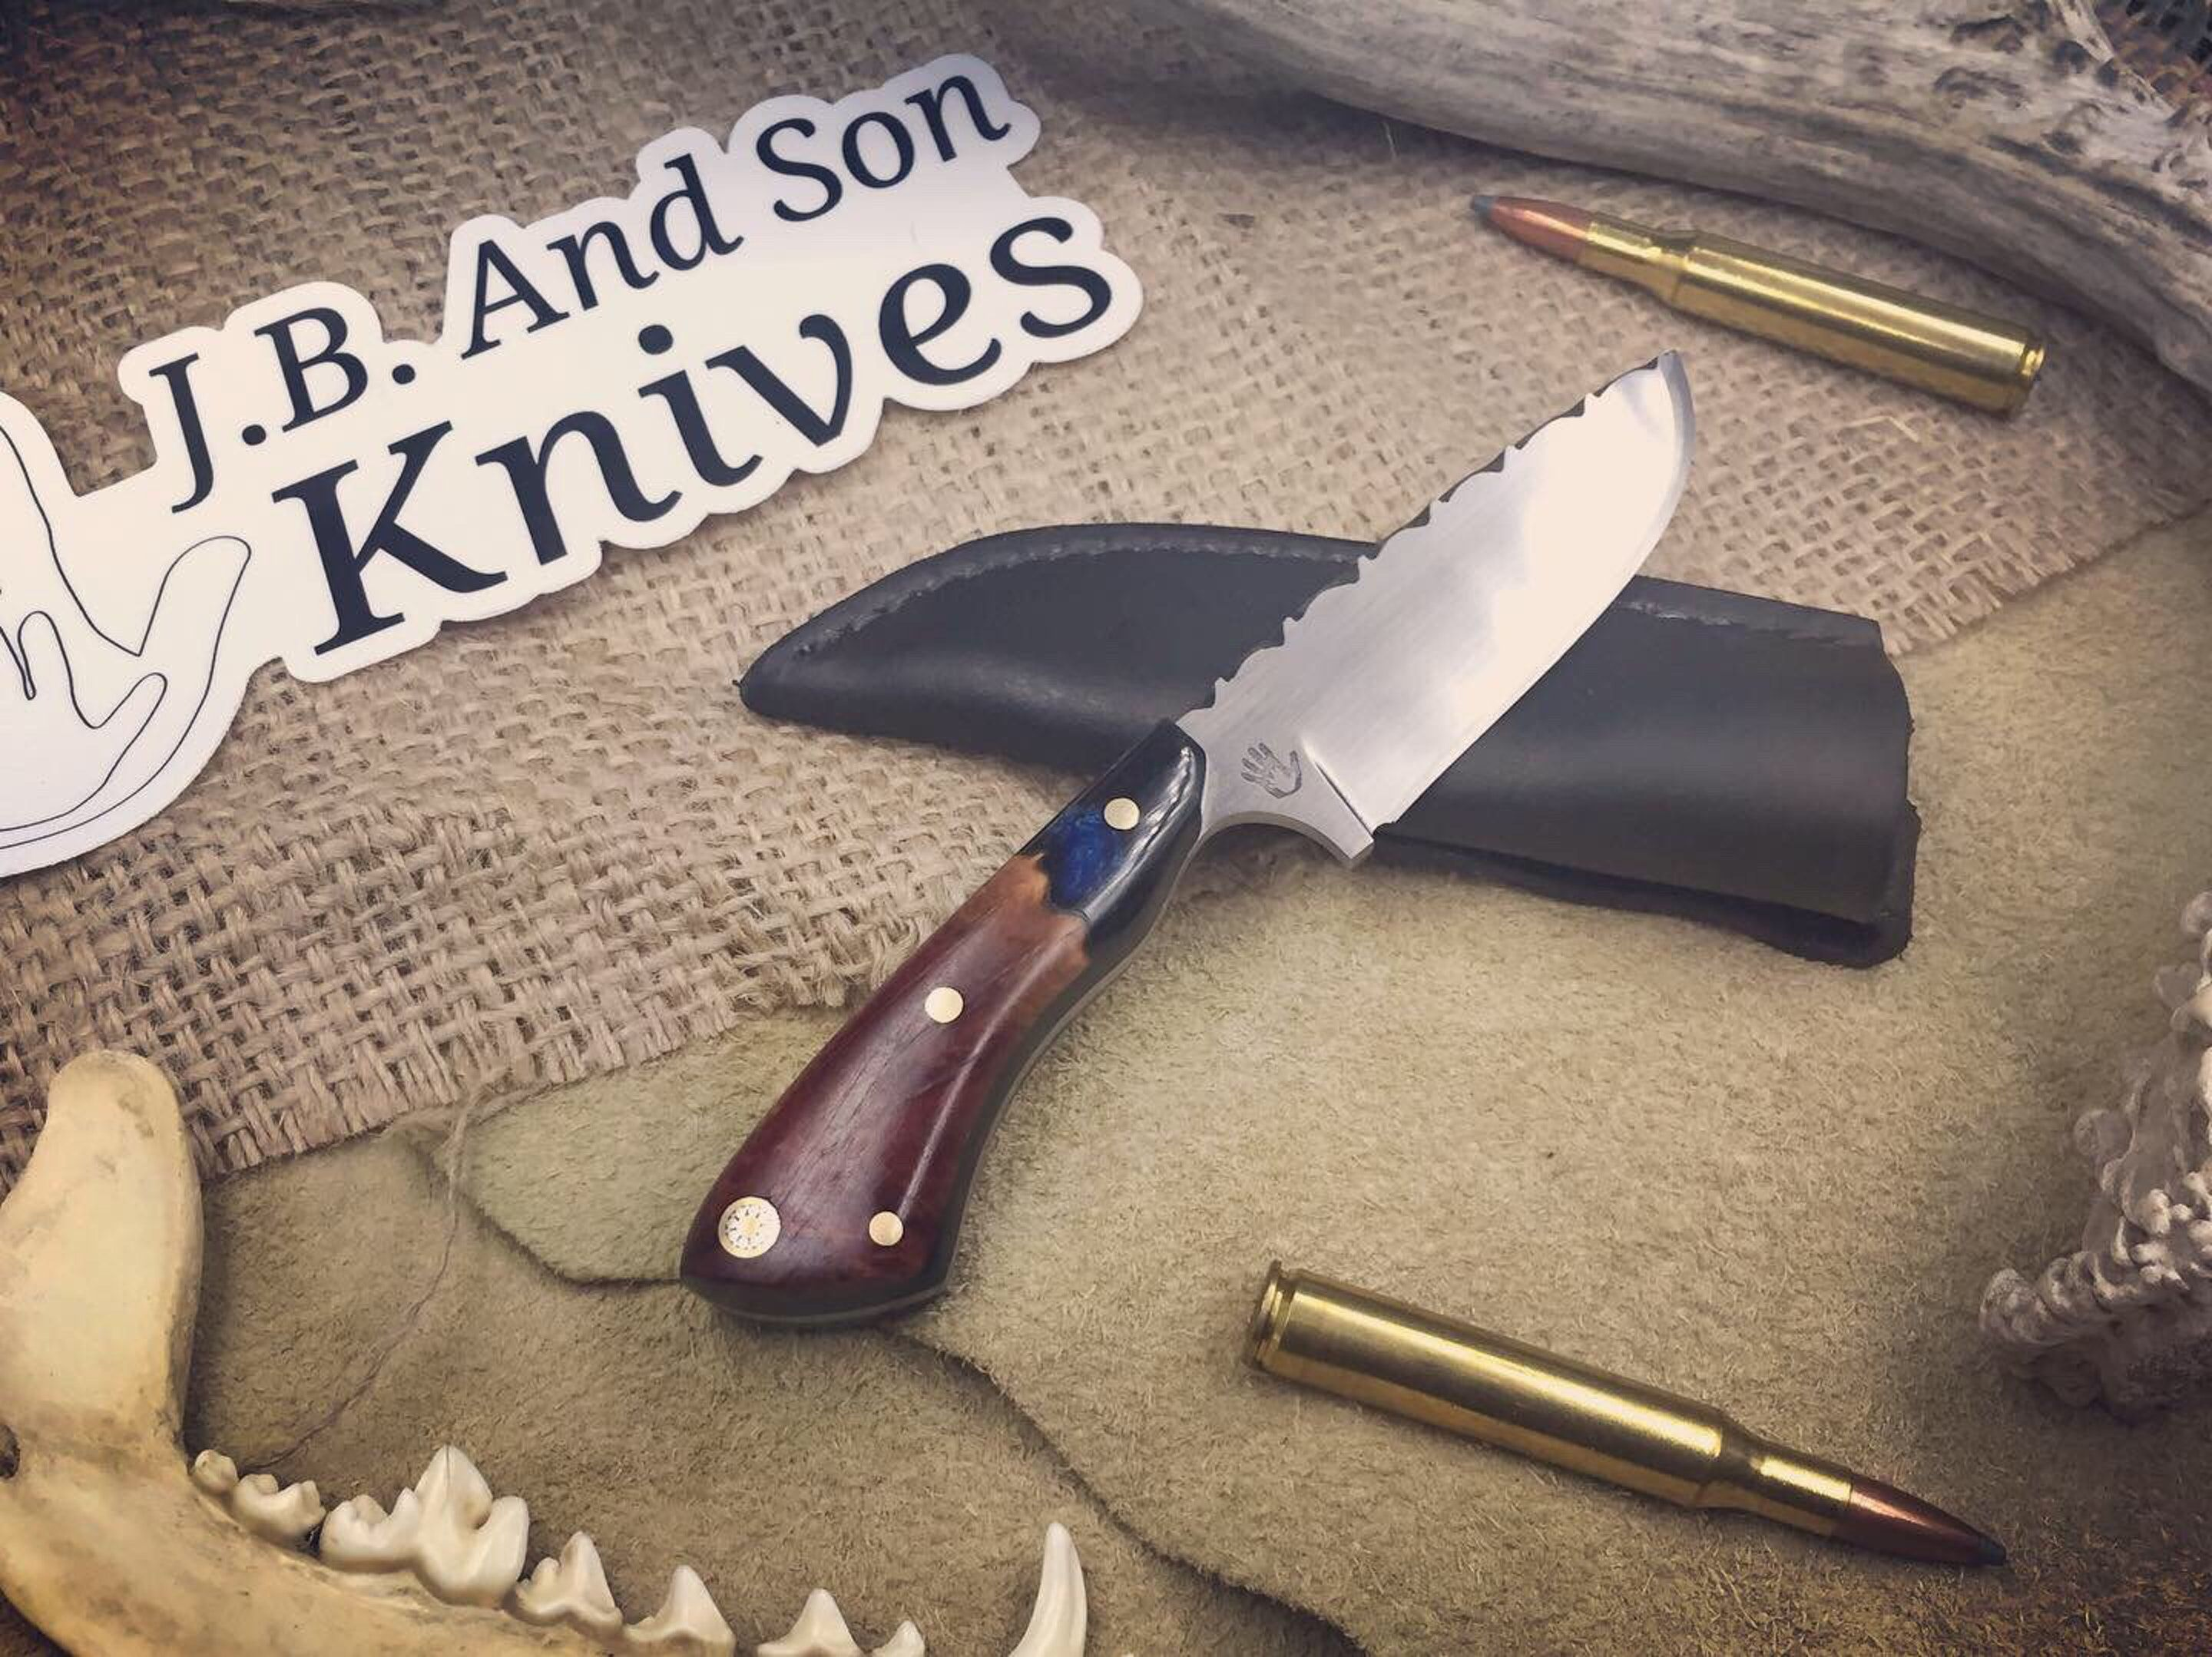 J B And Son Knives Hand Forged Mini Camper Leather Sheath Knife Mini Camper